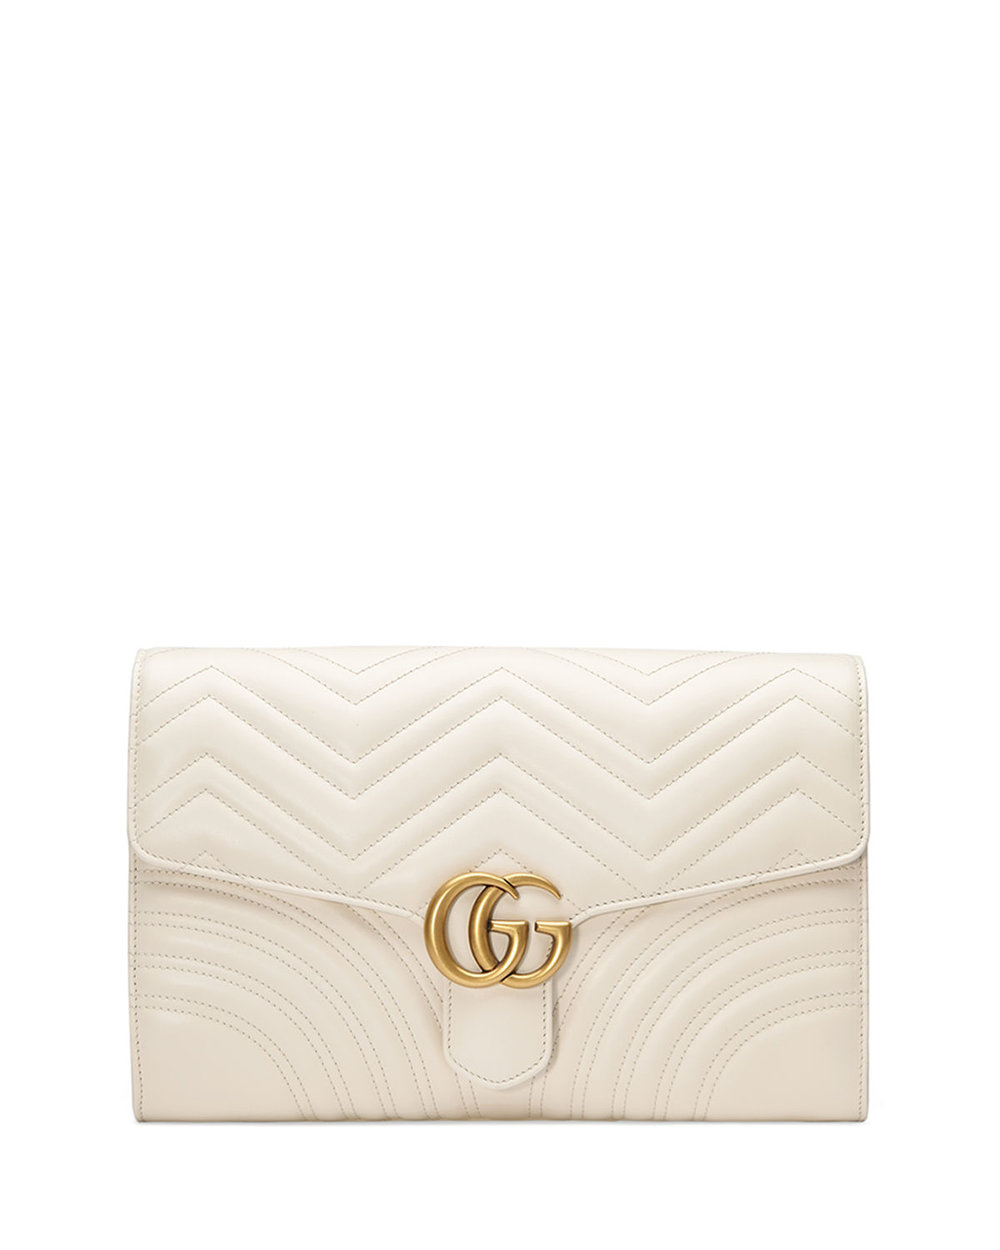 Gucci  GG Marmont Chevron Quilted Leather Flap Clutch Bag. Neiman Marcus. $1,250.